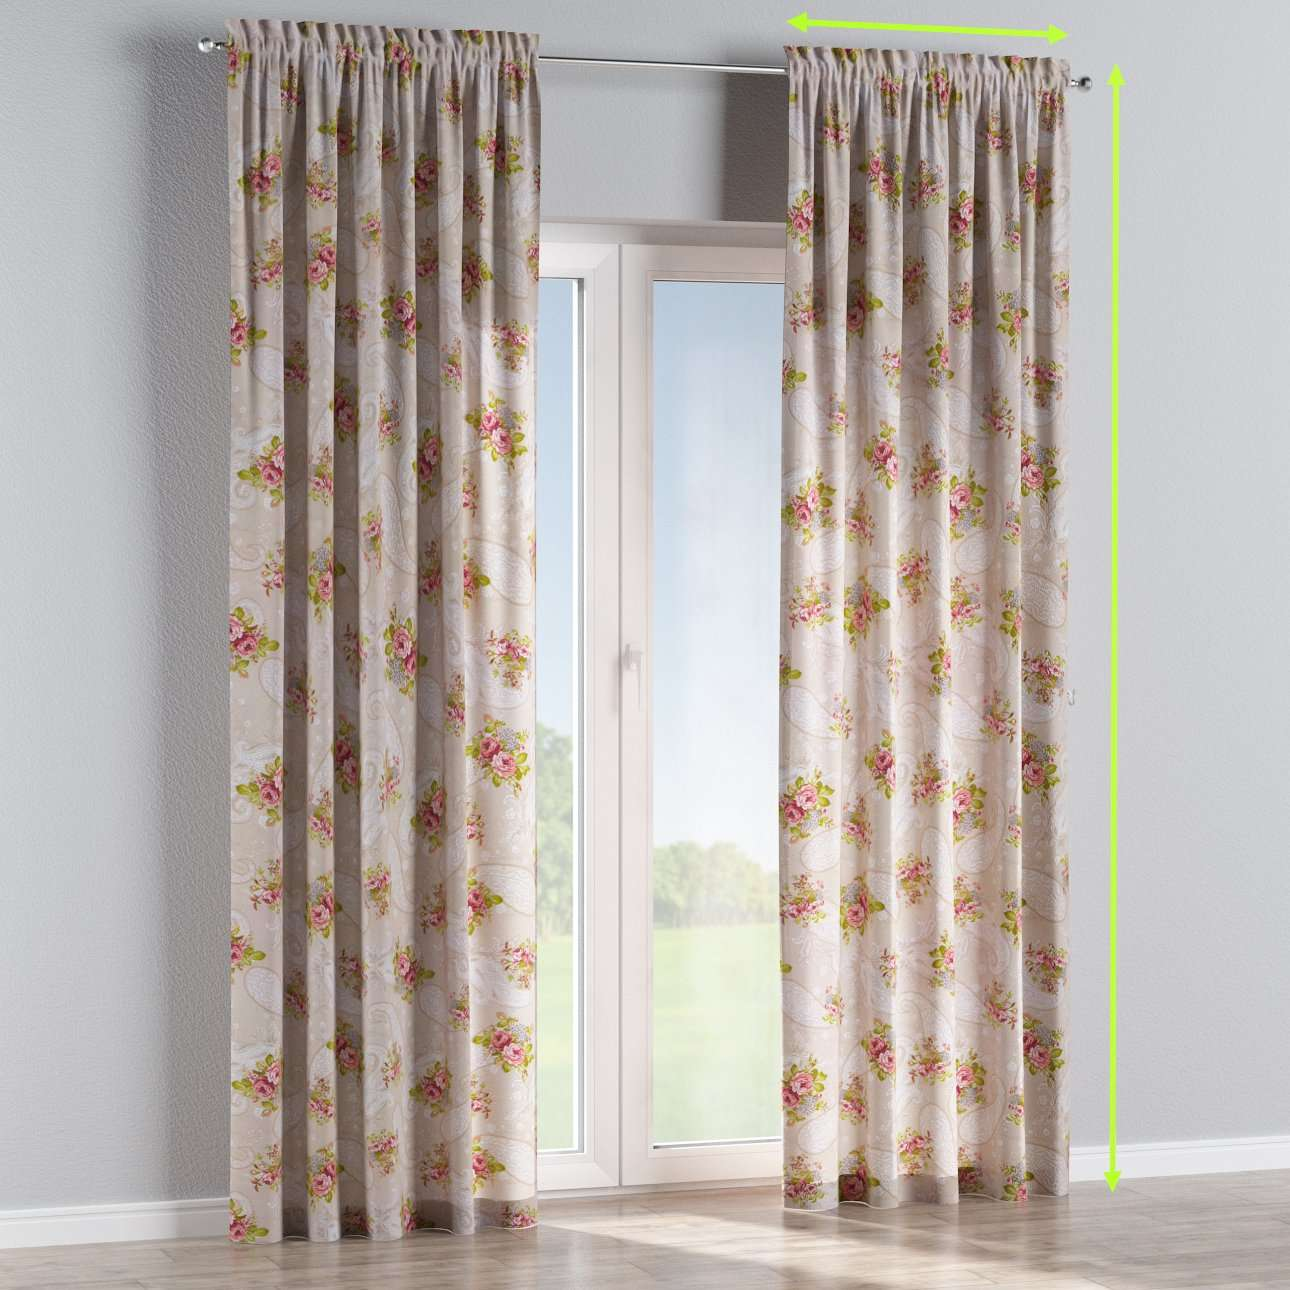 Slot and frill curtains in collection Flowers, fabric: 311-15